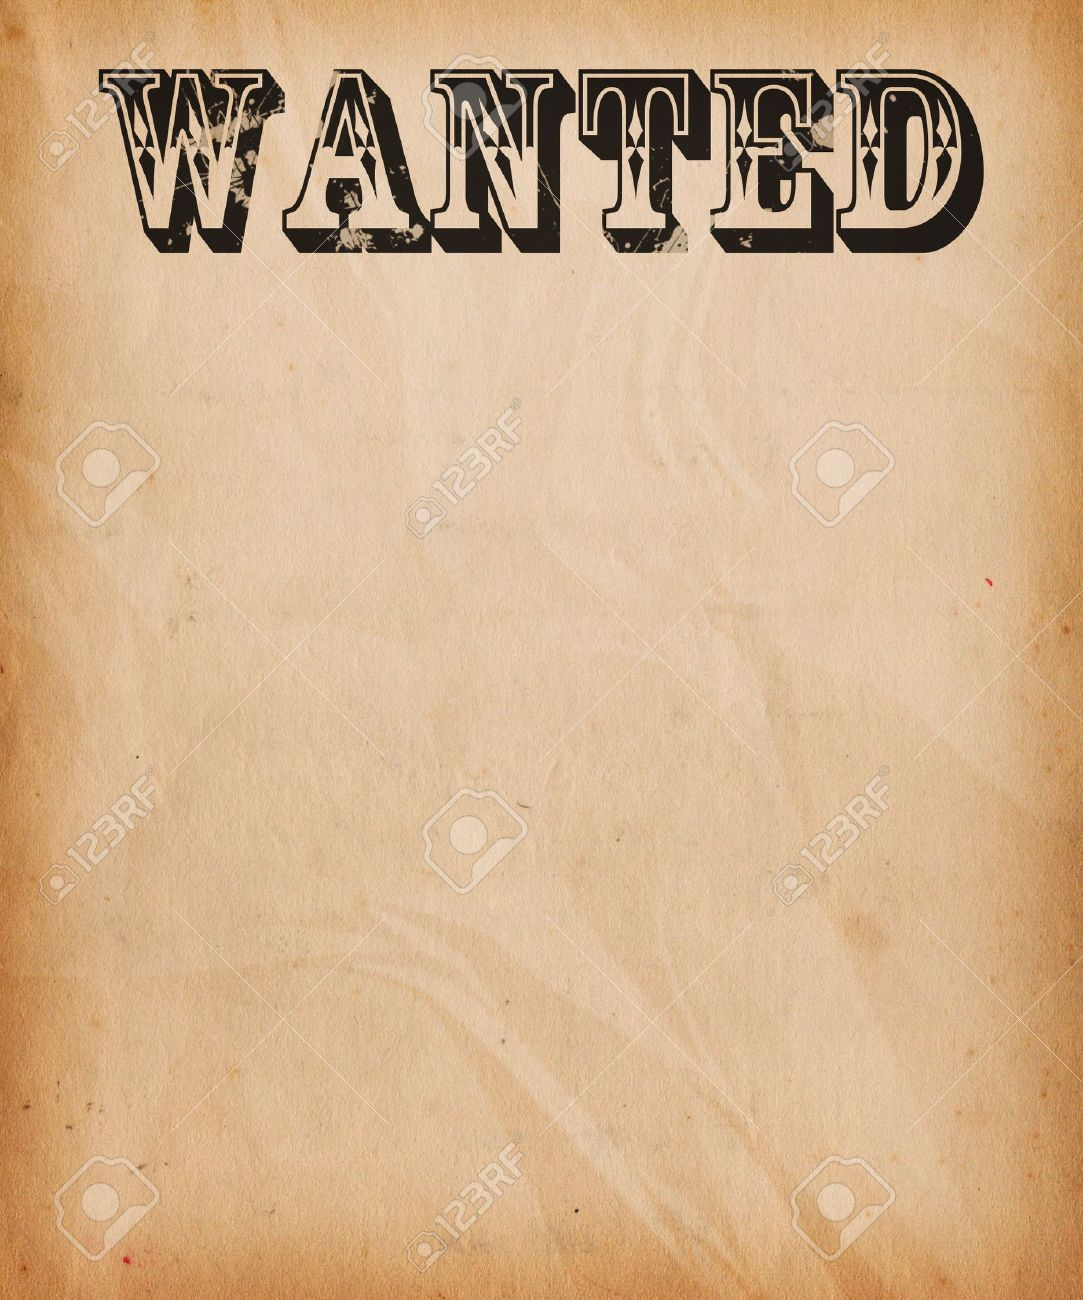 Doc Wanted Poster Template Microsoft Word 29 FREE Wanted – Background Templates for Microsoft Word